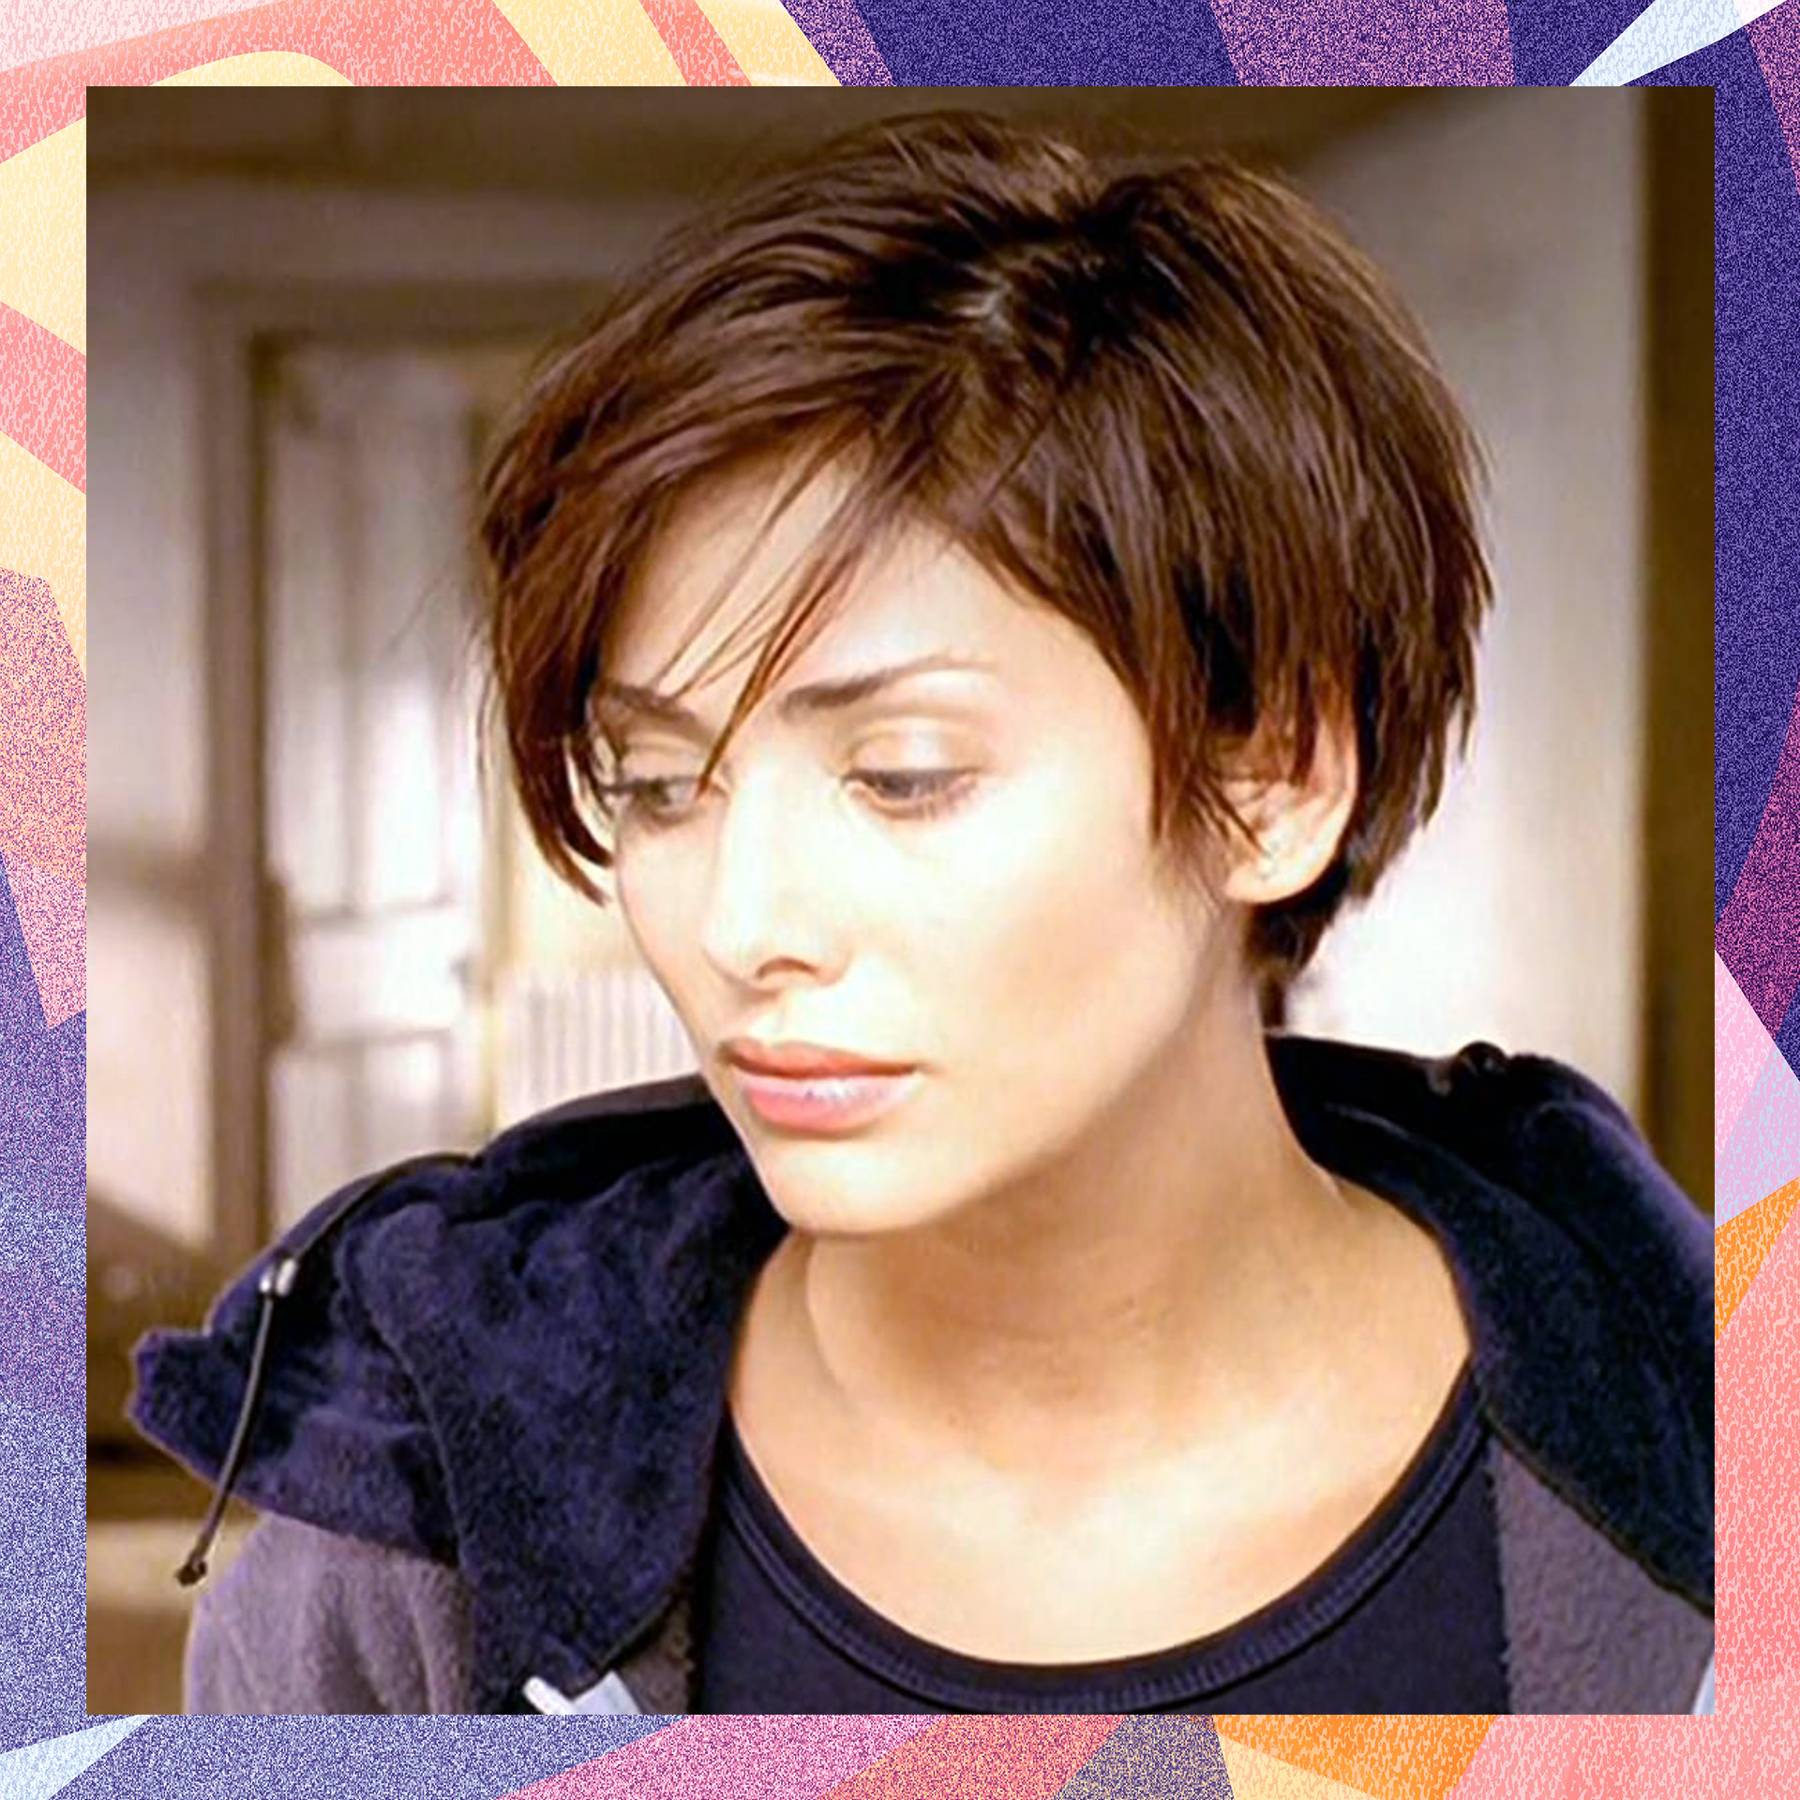 Video Natalie Imbruglia nudes (61 photos), Pussy, Cleavage, Twitter, butt 2020